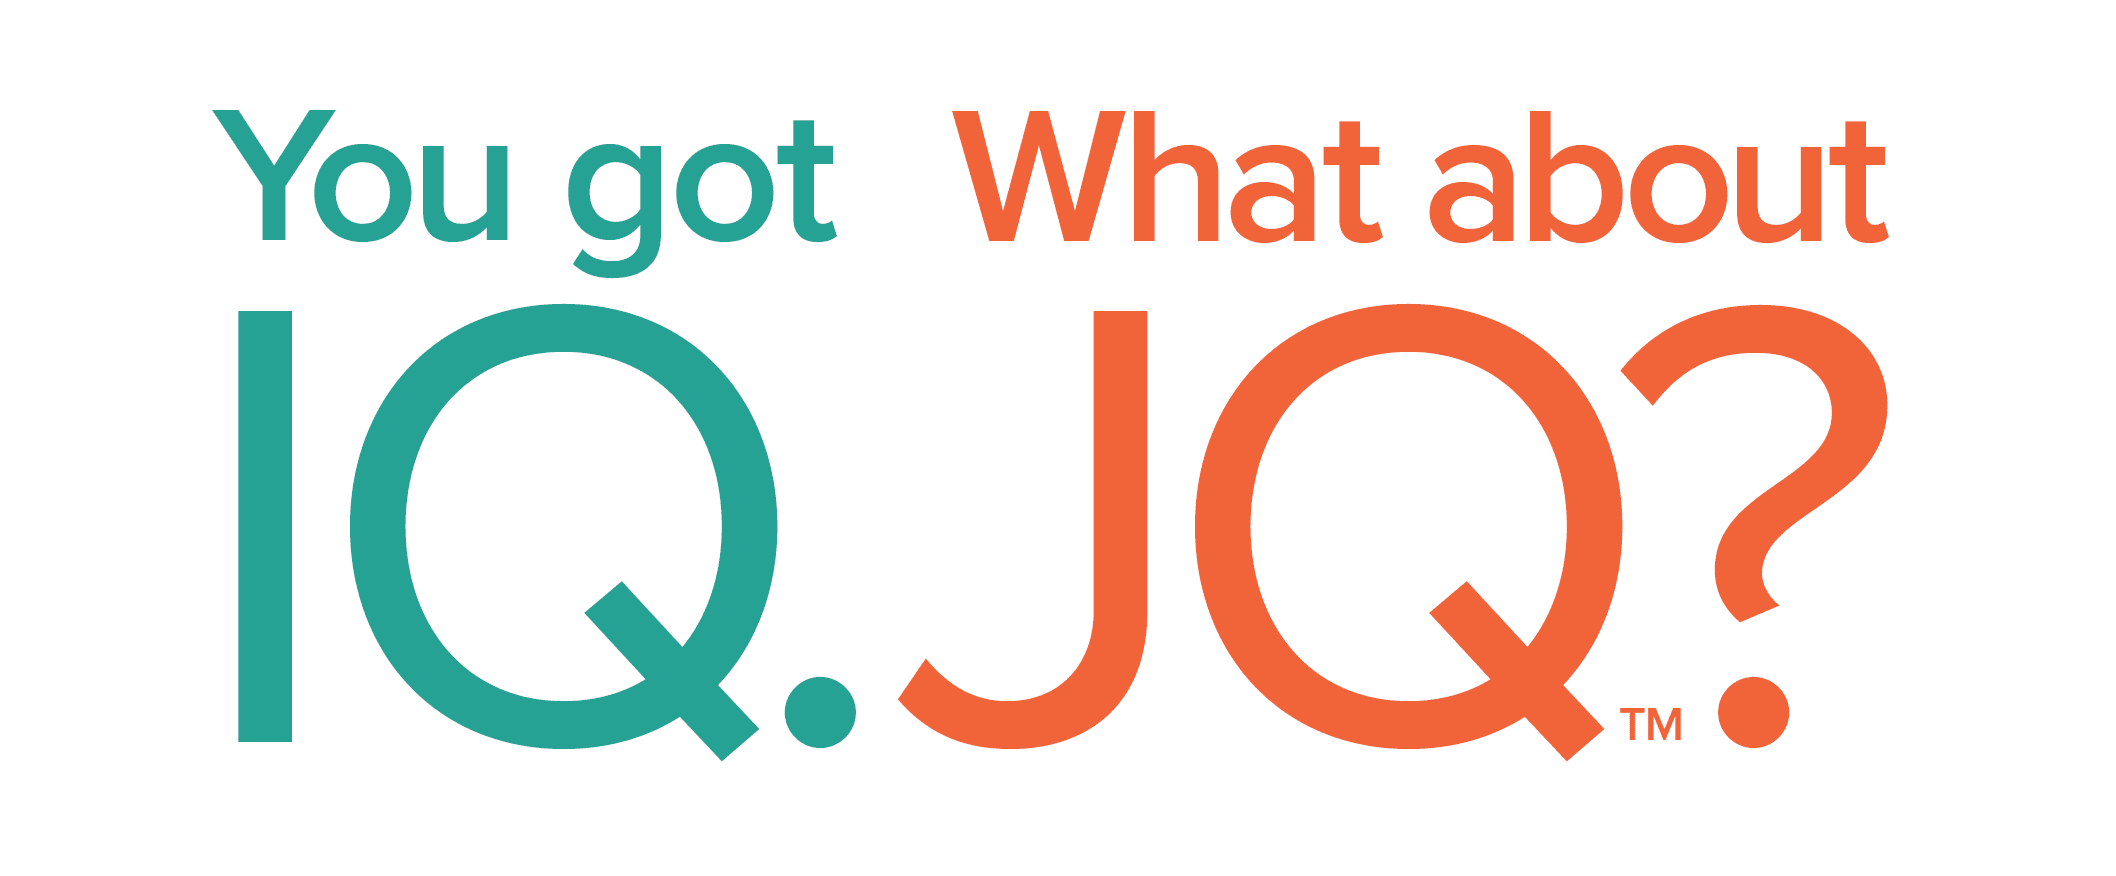 You got IQ. What about JQ?